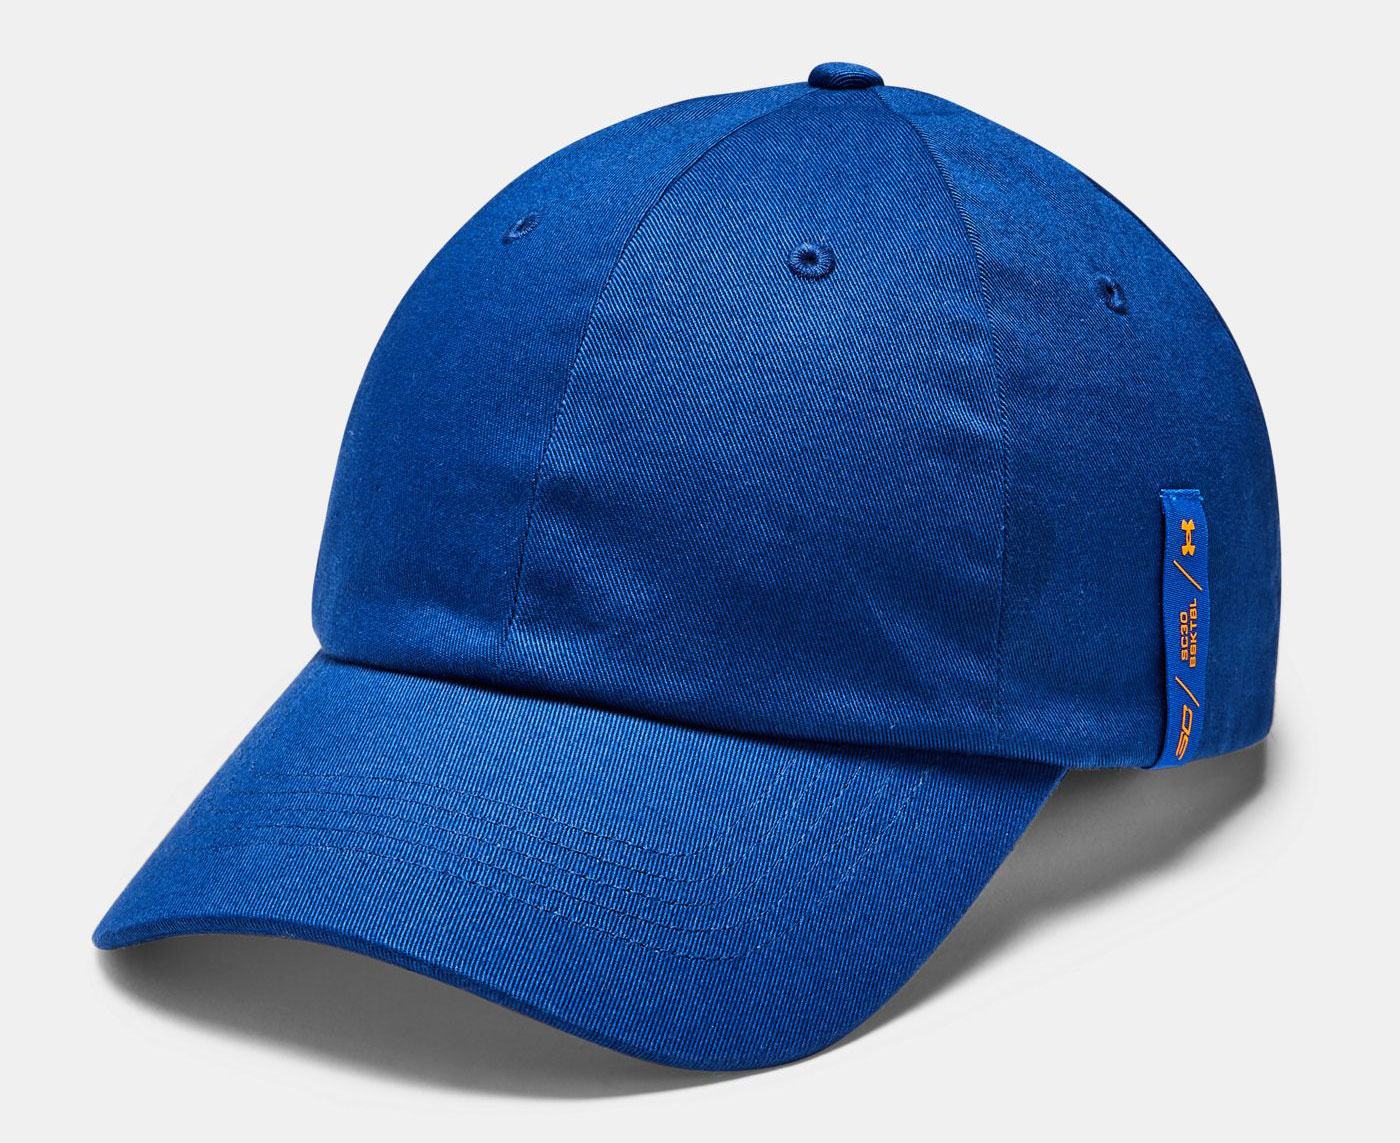 curry-7-hat-blue-1